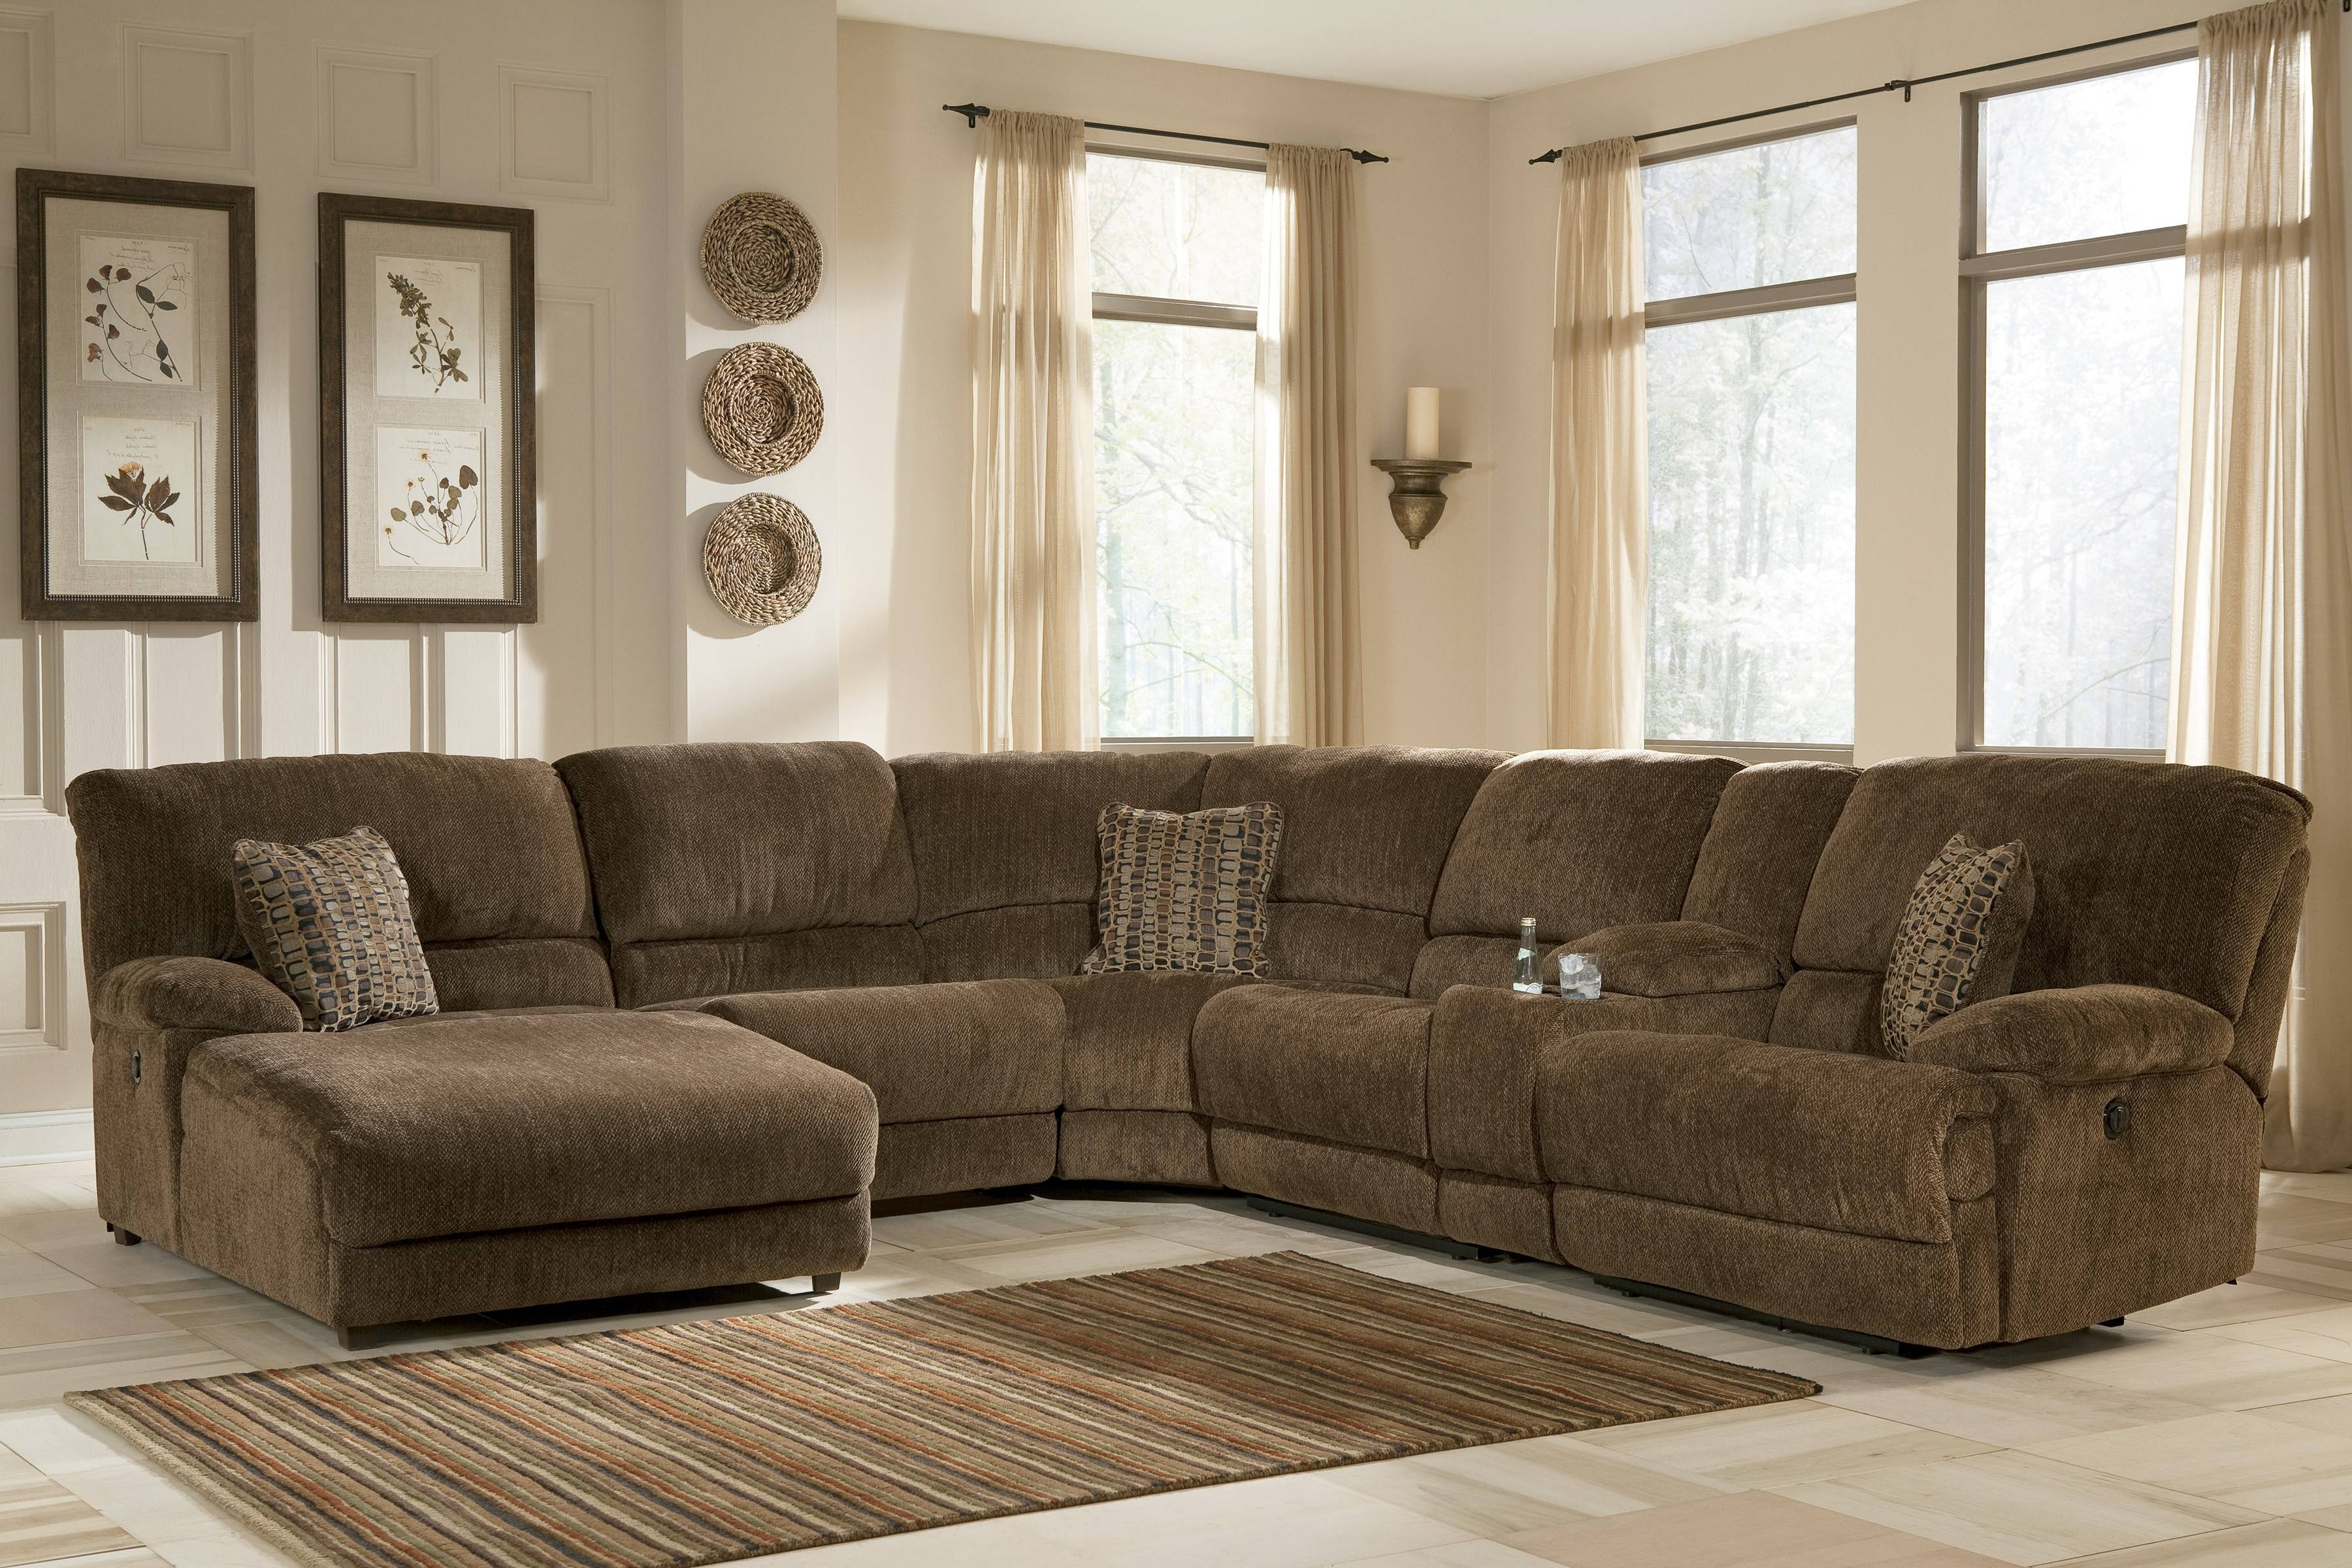 Furniture: Sectional Couches With Recliners | U Shaped Sectional inside Sectional Sofas With Electric Recliners (Image 16 of 30)